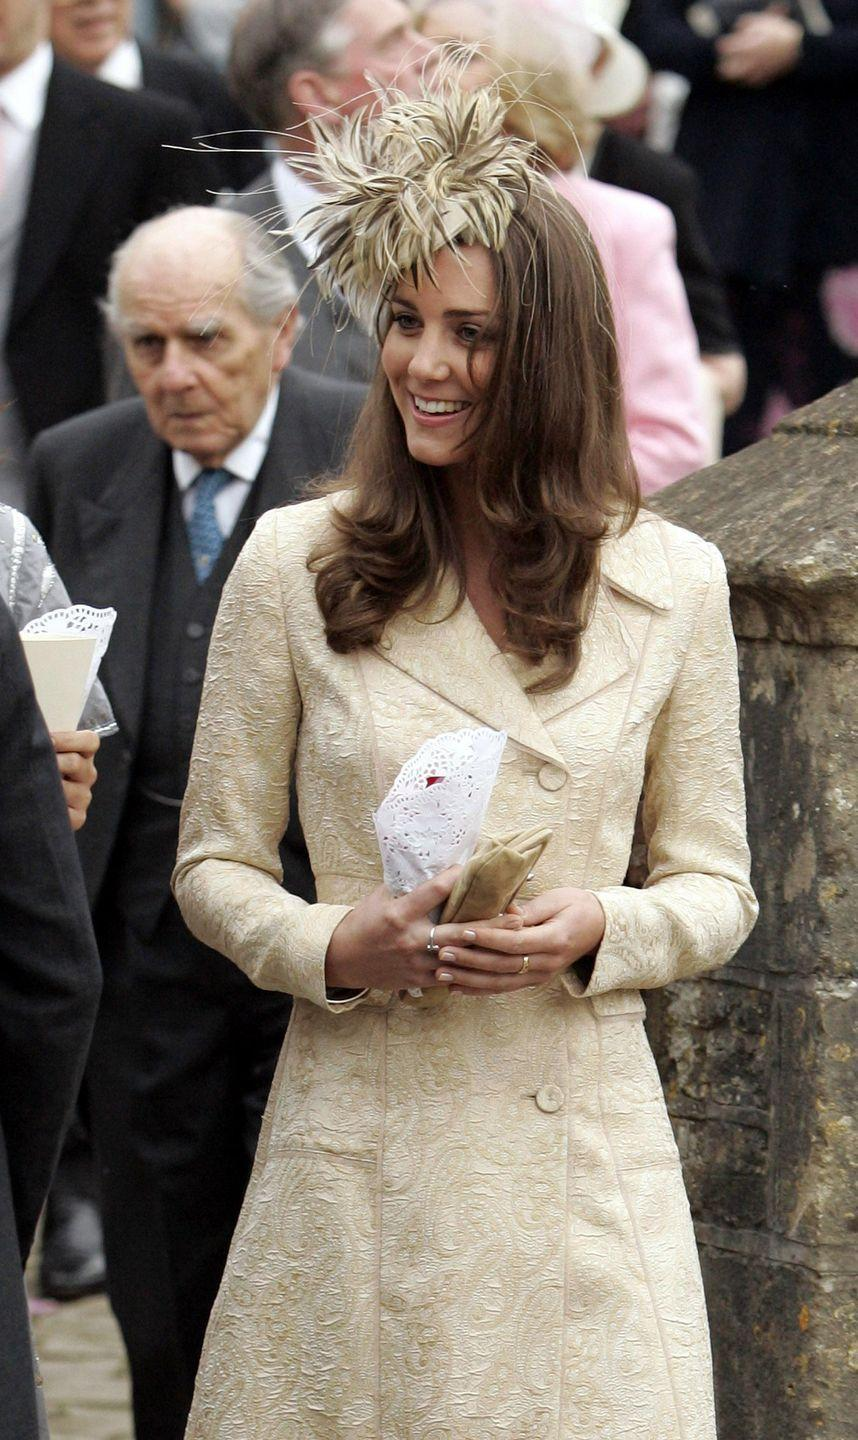 <p>To attend the wedding of Laura Parker-Bowles and hang out with her future in-laws, Kate wore this gold paisley coat by Day Birger et Mikkelsen paired with a really fun fascinator. It looks like a sea anemone!</p>